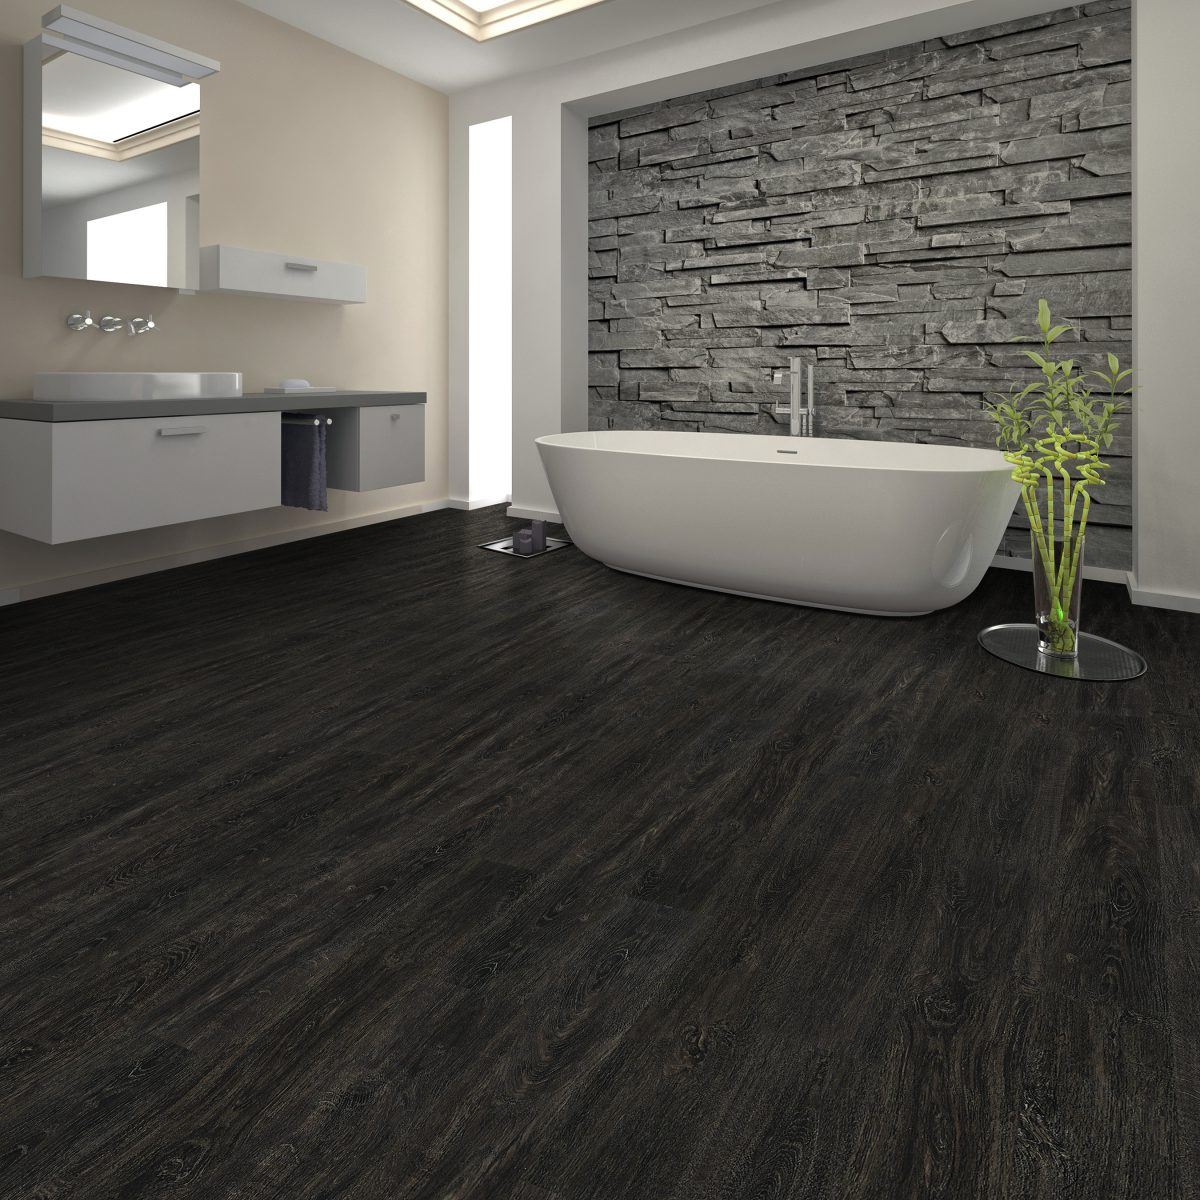 5 flooring options for kitchens and bathrooms empire Empire bathrooms